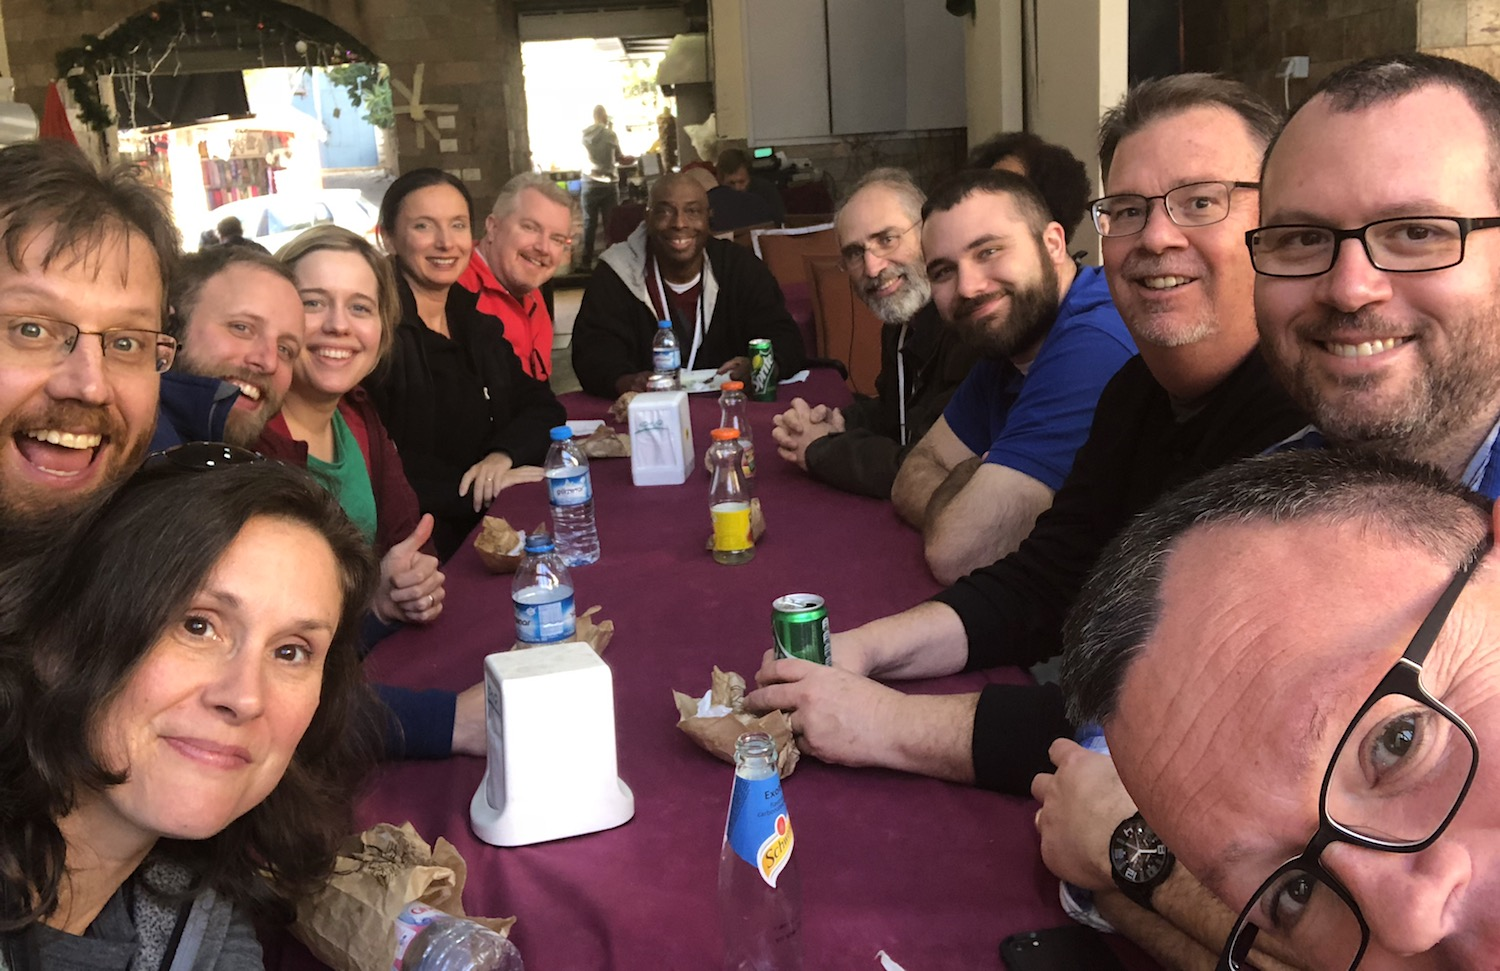 Resilient! Enjoying the finest shawarmas and baklava in Nazareth! Photo by Bible Land Explorer Jay Hess.